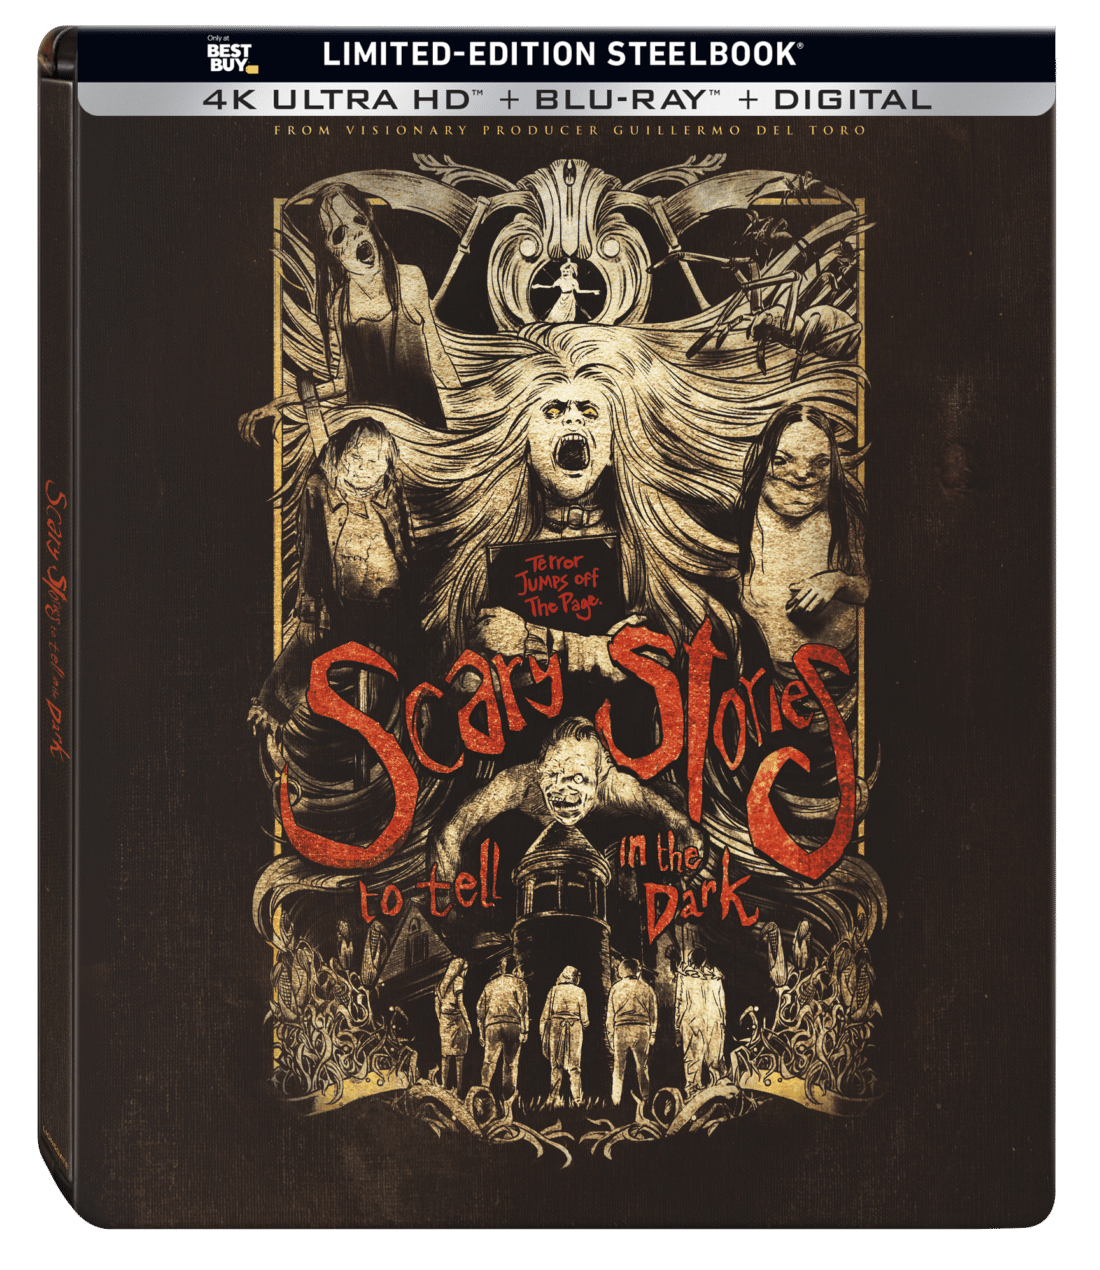 Scary Stories to Tell in the DarkSteelbook. Get ready to be absolutely terrified whenScary Stories to Tell in the Darkarrives on Digital October 22 and on 4K Ultra HD™ Combo Pack (plus Blu-ray and Digital), Blu-ray Combo Pack (plus DVD and Digital), DVD, and On-Demand November 5. The highly anticipated film adaptation of the iconic book series brings the thrills and chills of some of Alvin Schwartz's scariest stories to life.